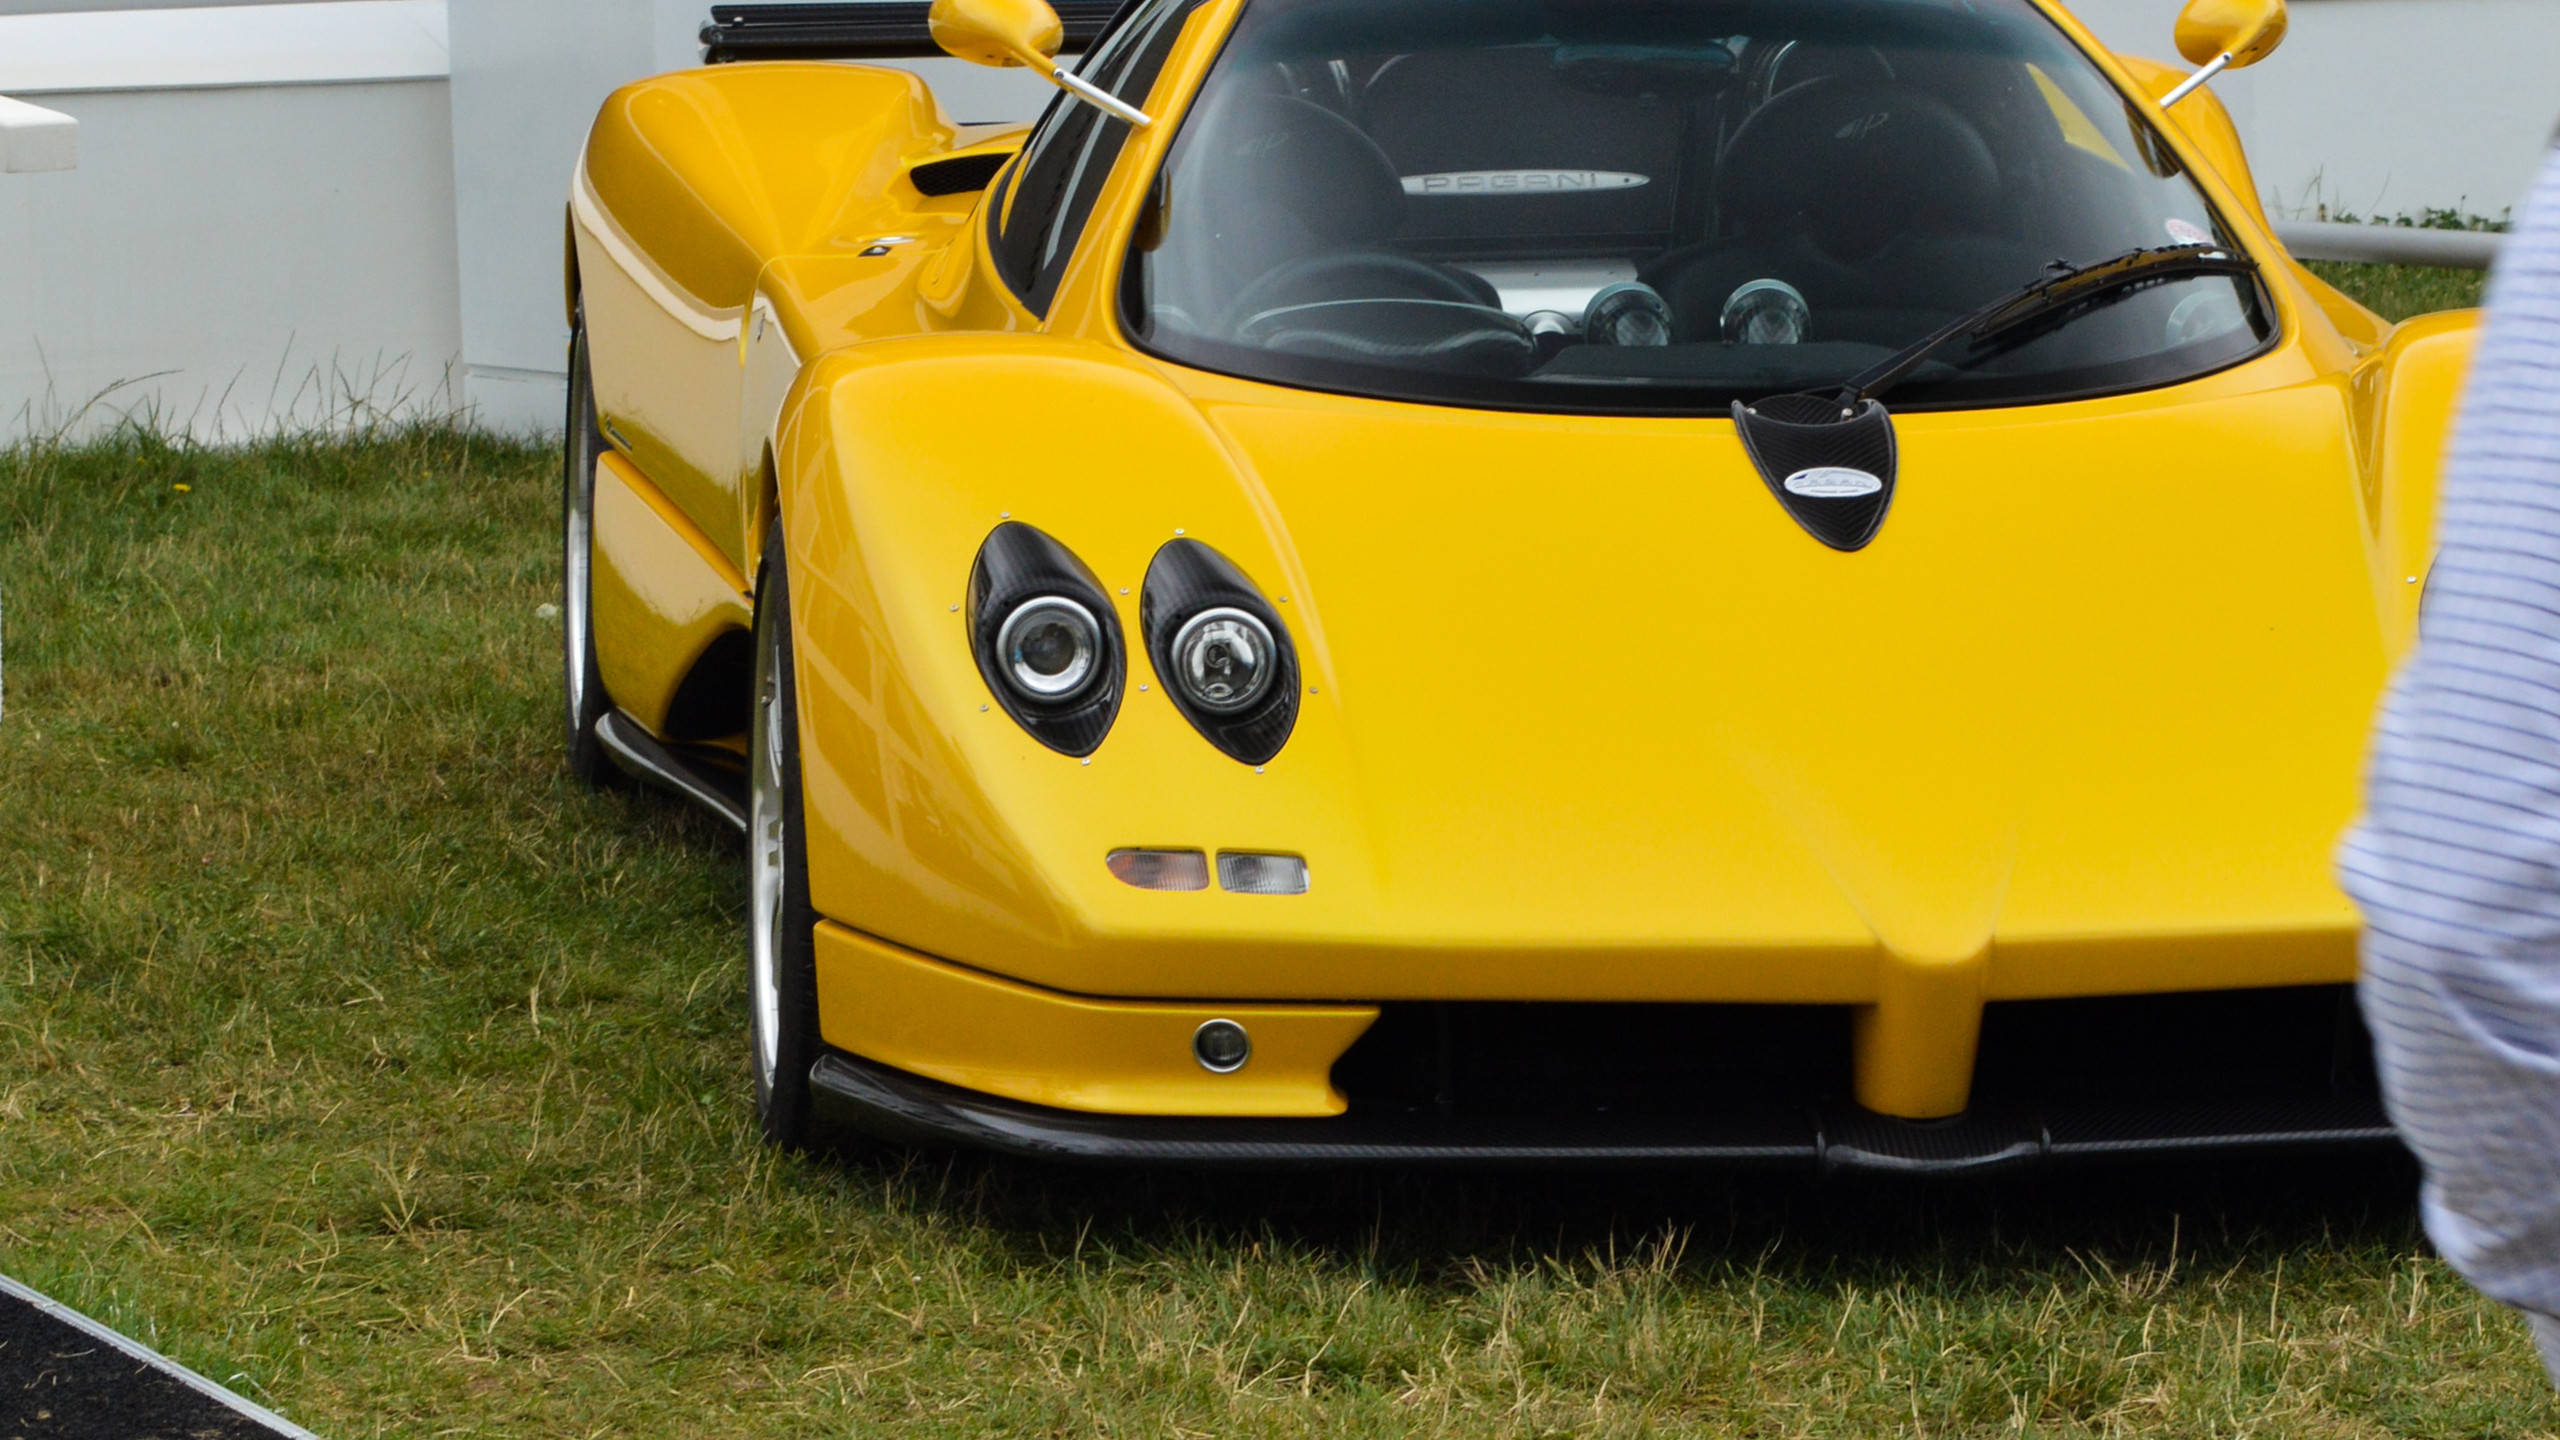 One of Pagani's first models photographed at the Goodwood Festival Of Speed 2017